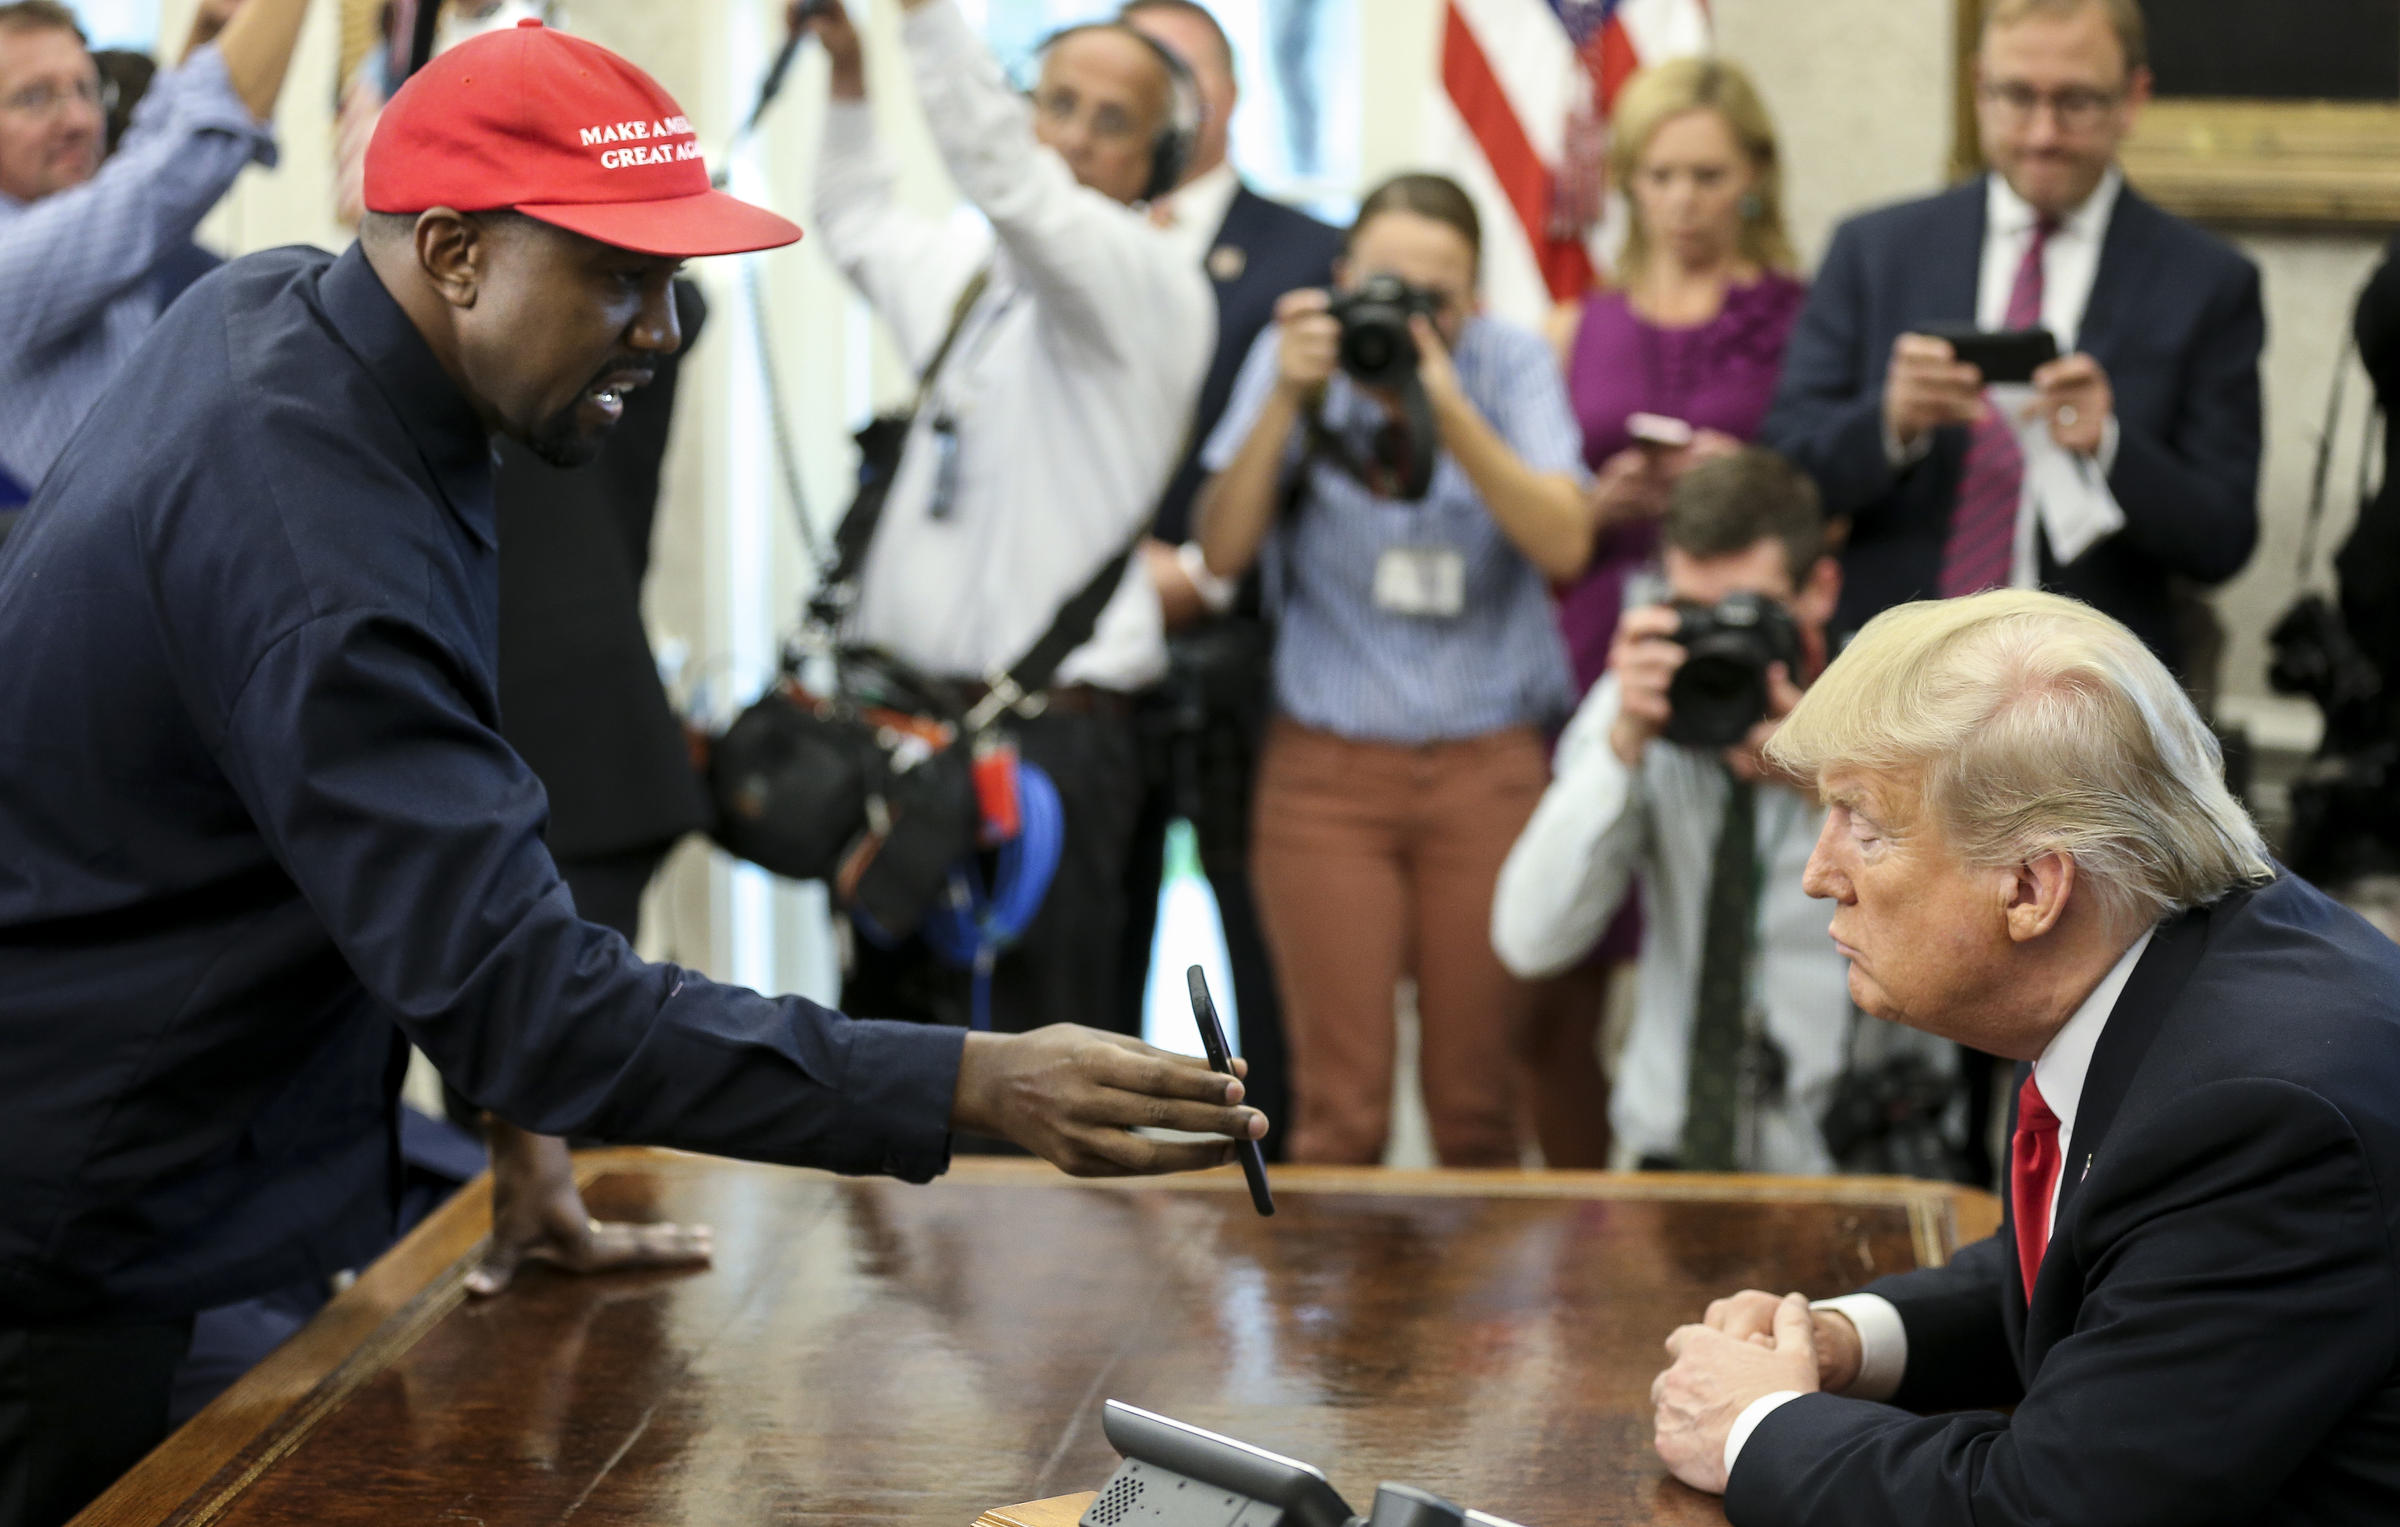 a726503a9e246 Rapper Kanye West shows a picture of a plane on a phone to President Trump  during a meeting in the Oval Office on Thursday.